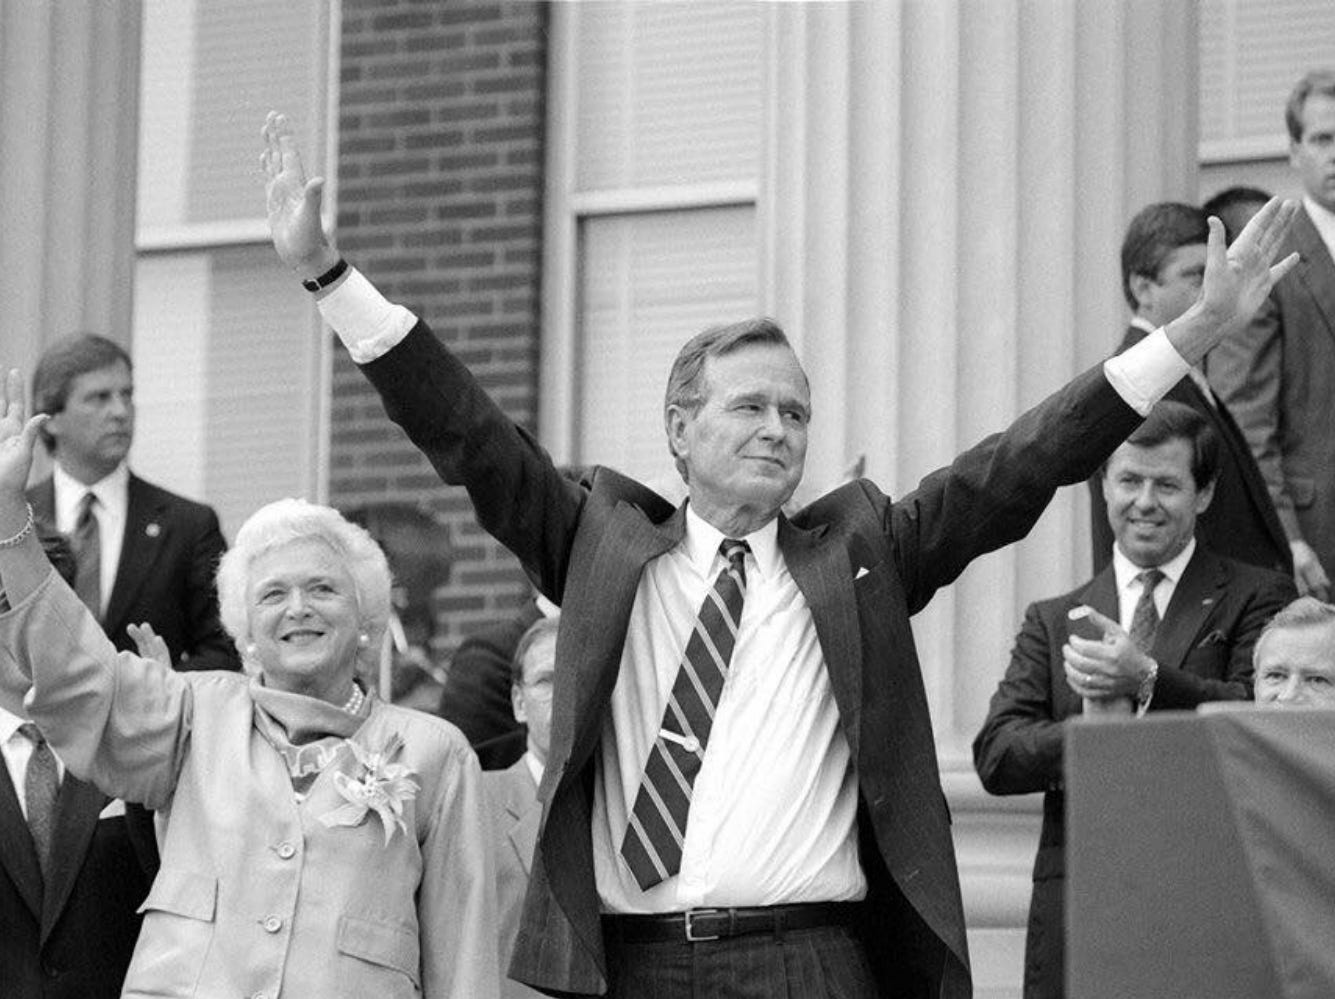 In this Aug. 29, 1988, file photo, Vice President George H.W. Bush, center, and his wife, Barbara Bush, wave to the crowd after his campaign speech at Kirksey Old Main on the campus of Middle Tennessee State University. The Bushes were visiting MTSU as part of a fundraising trip to Nashville during the 1988 presidential campaign.